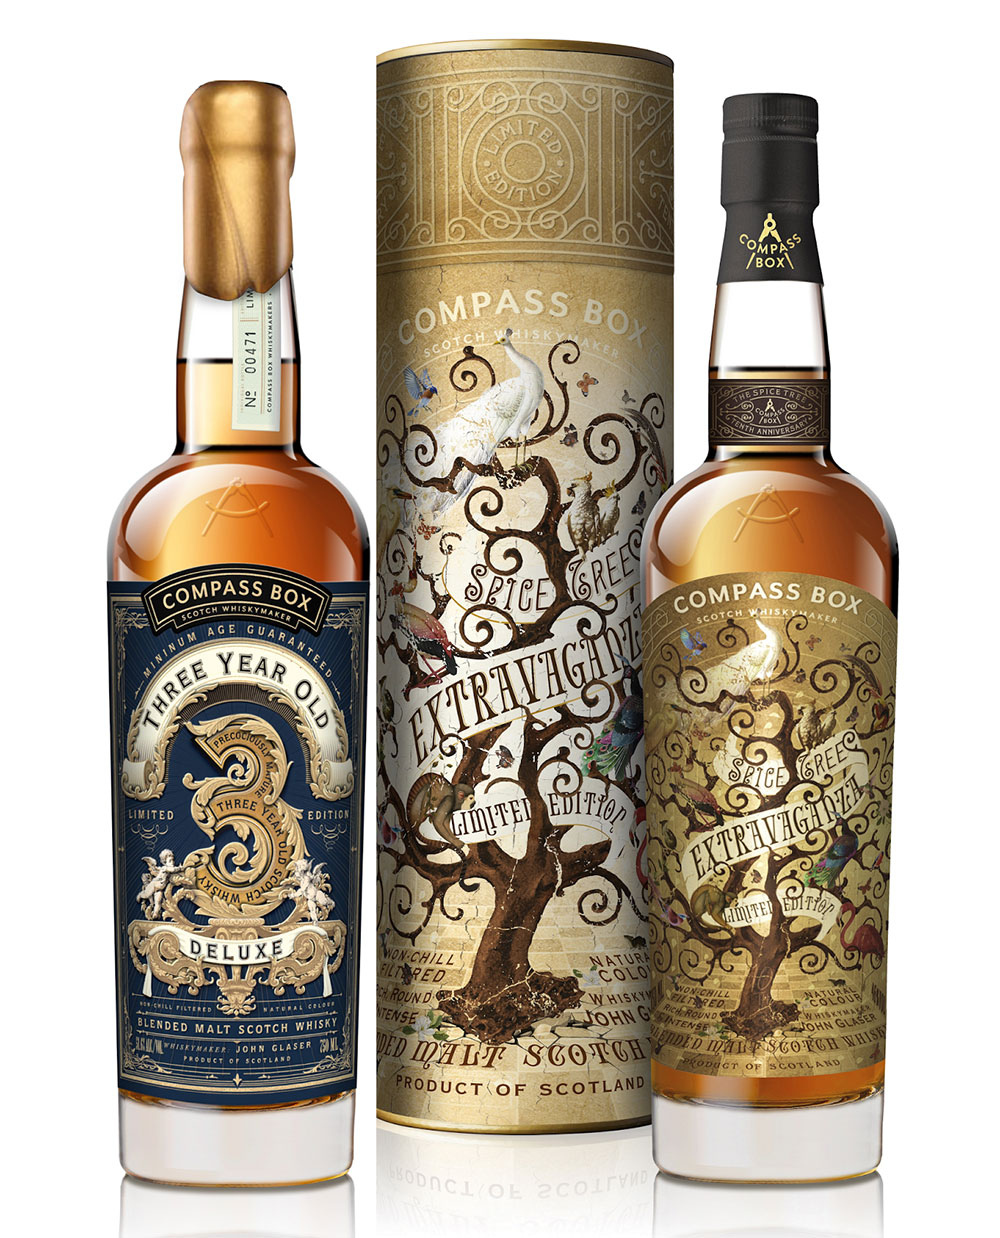 Compass Box - Three Year Old Deluxe & Spice Tree Extravaganza